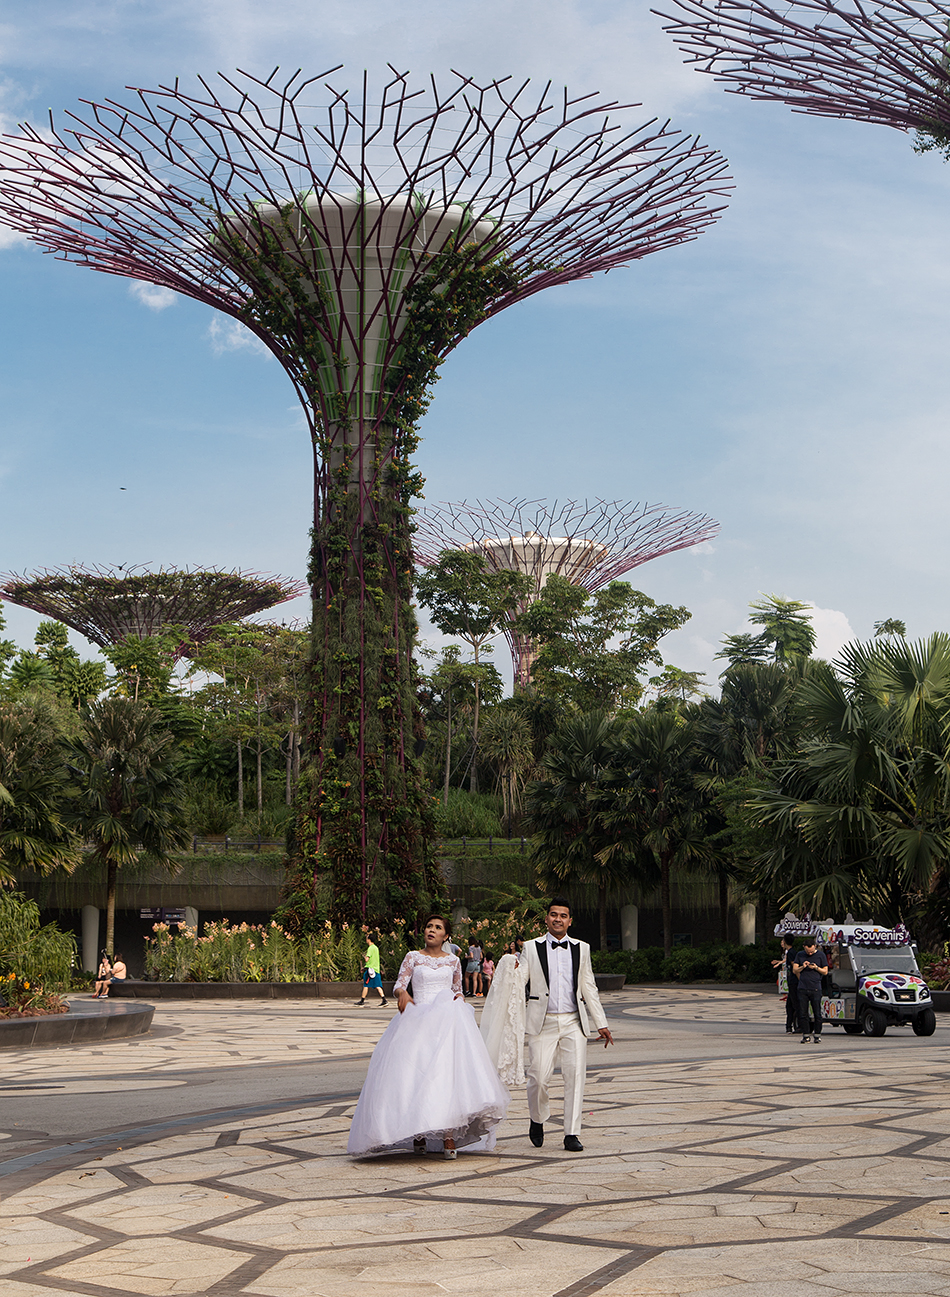 Fabian Fröhlich, Singapore, Gardens by the Bay, Supertrees